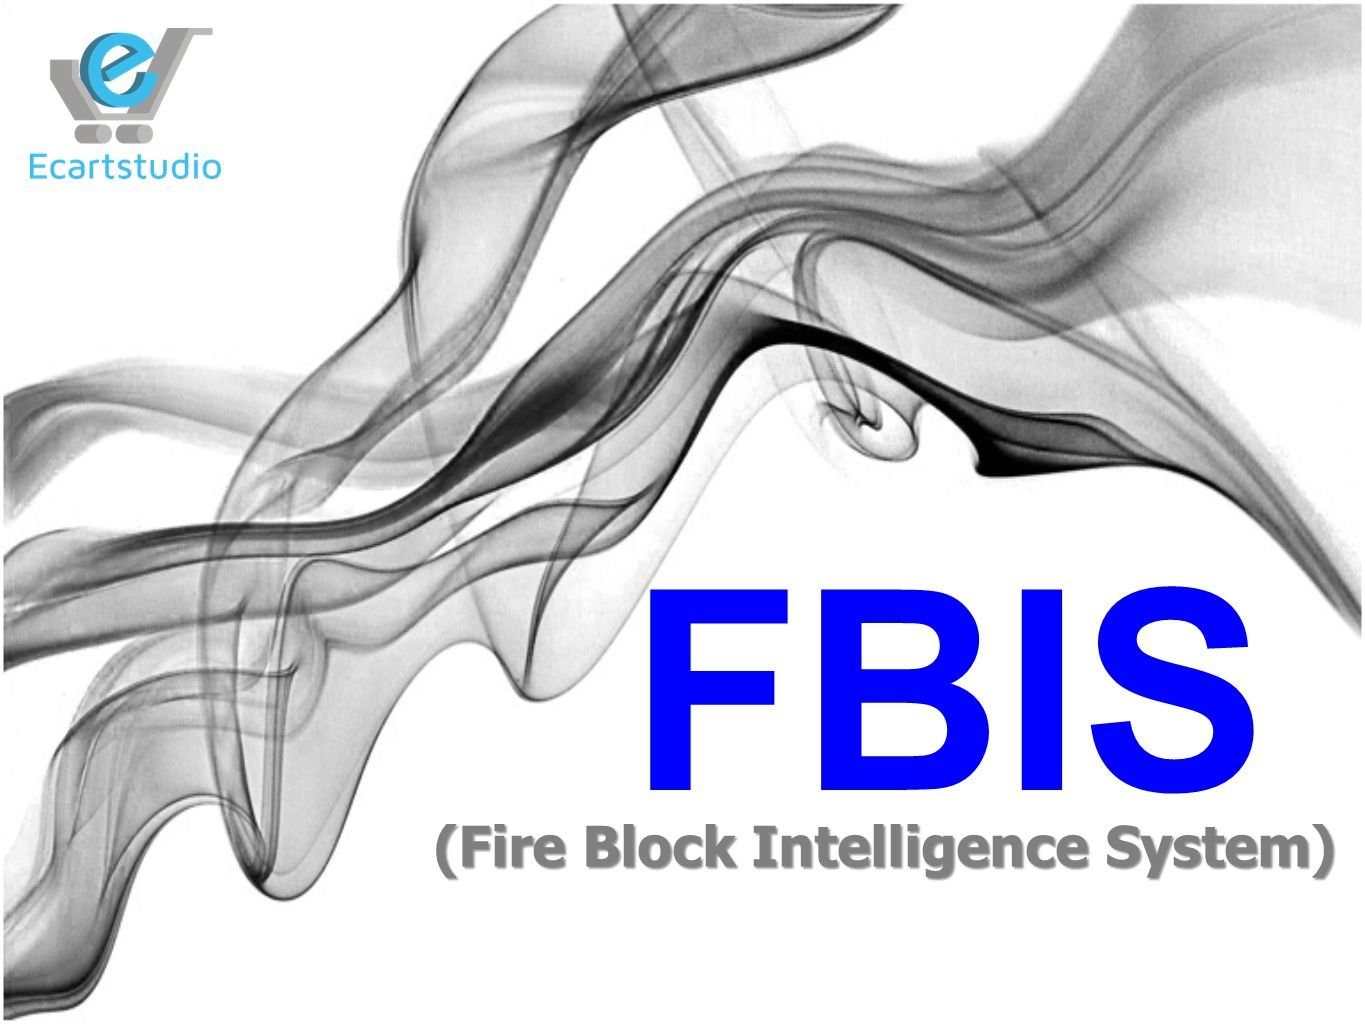 (Fire Block Intelligence System) FBIS